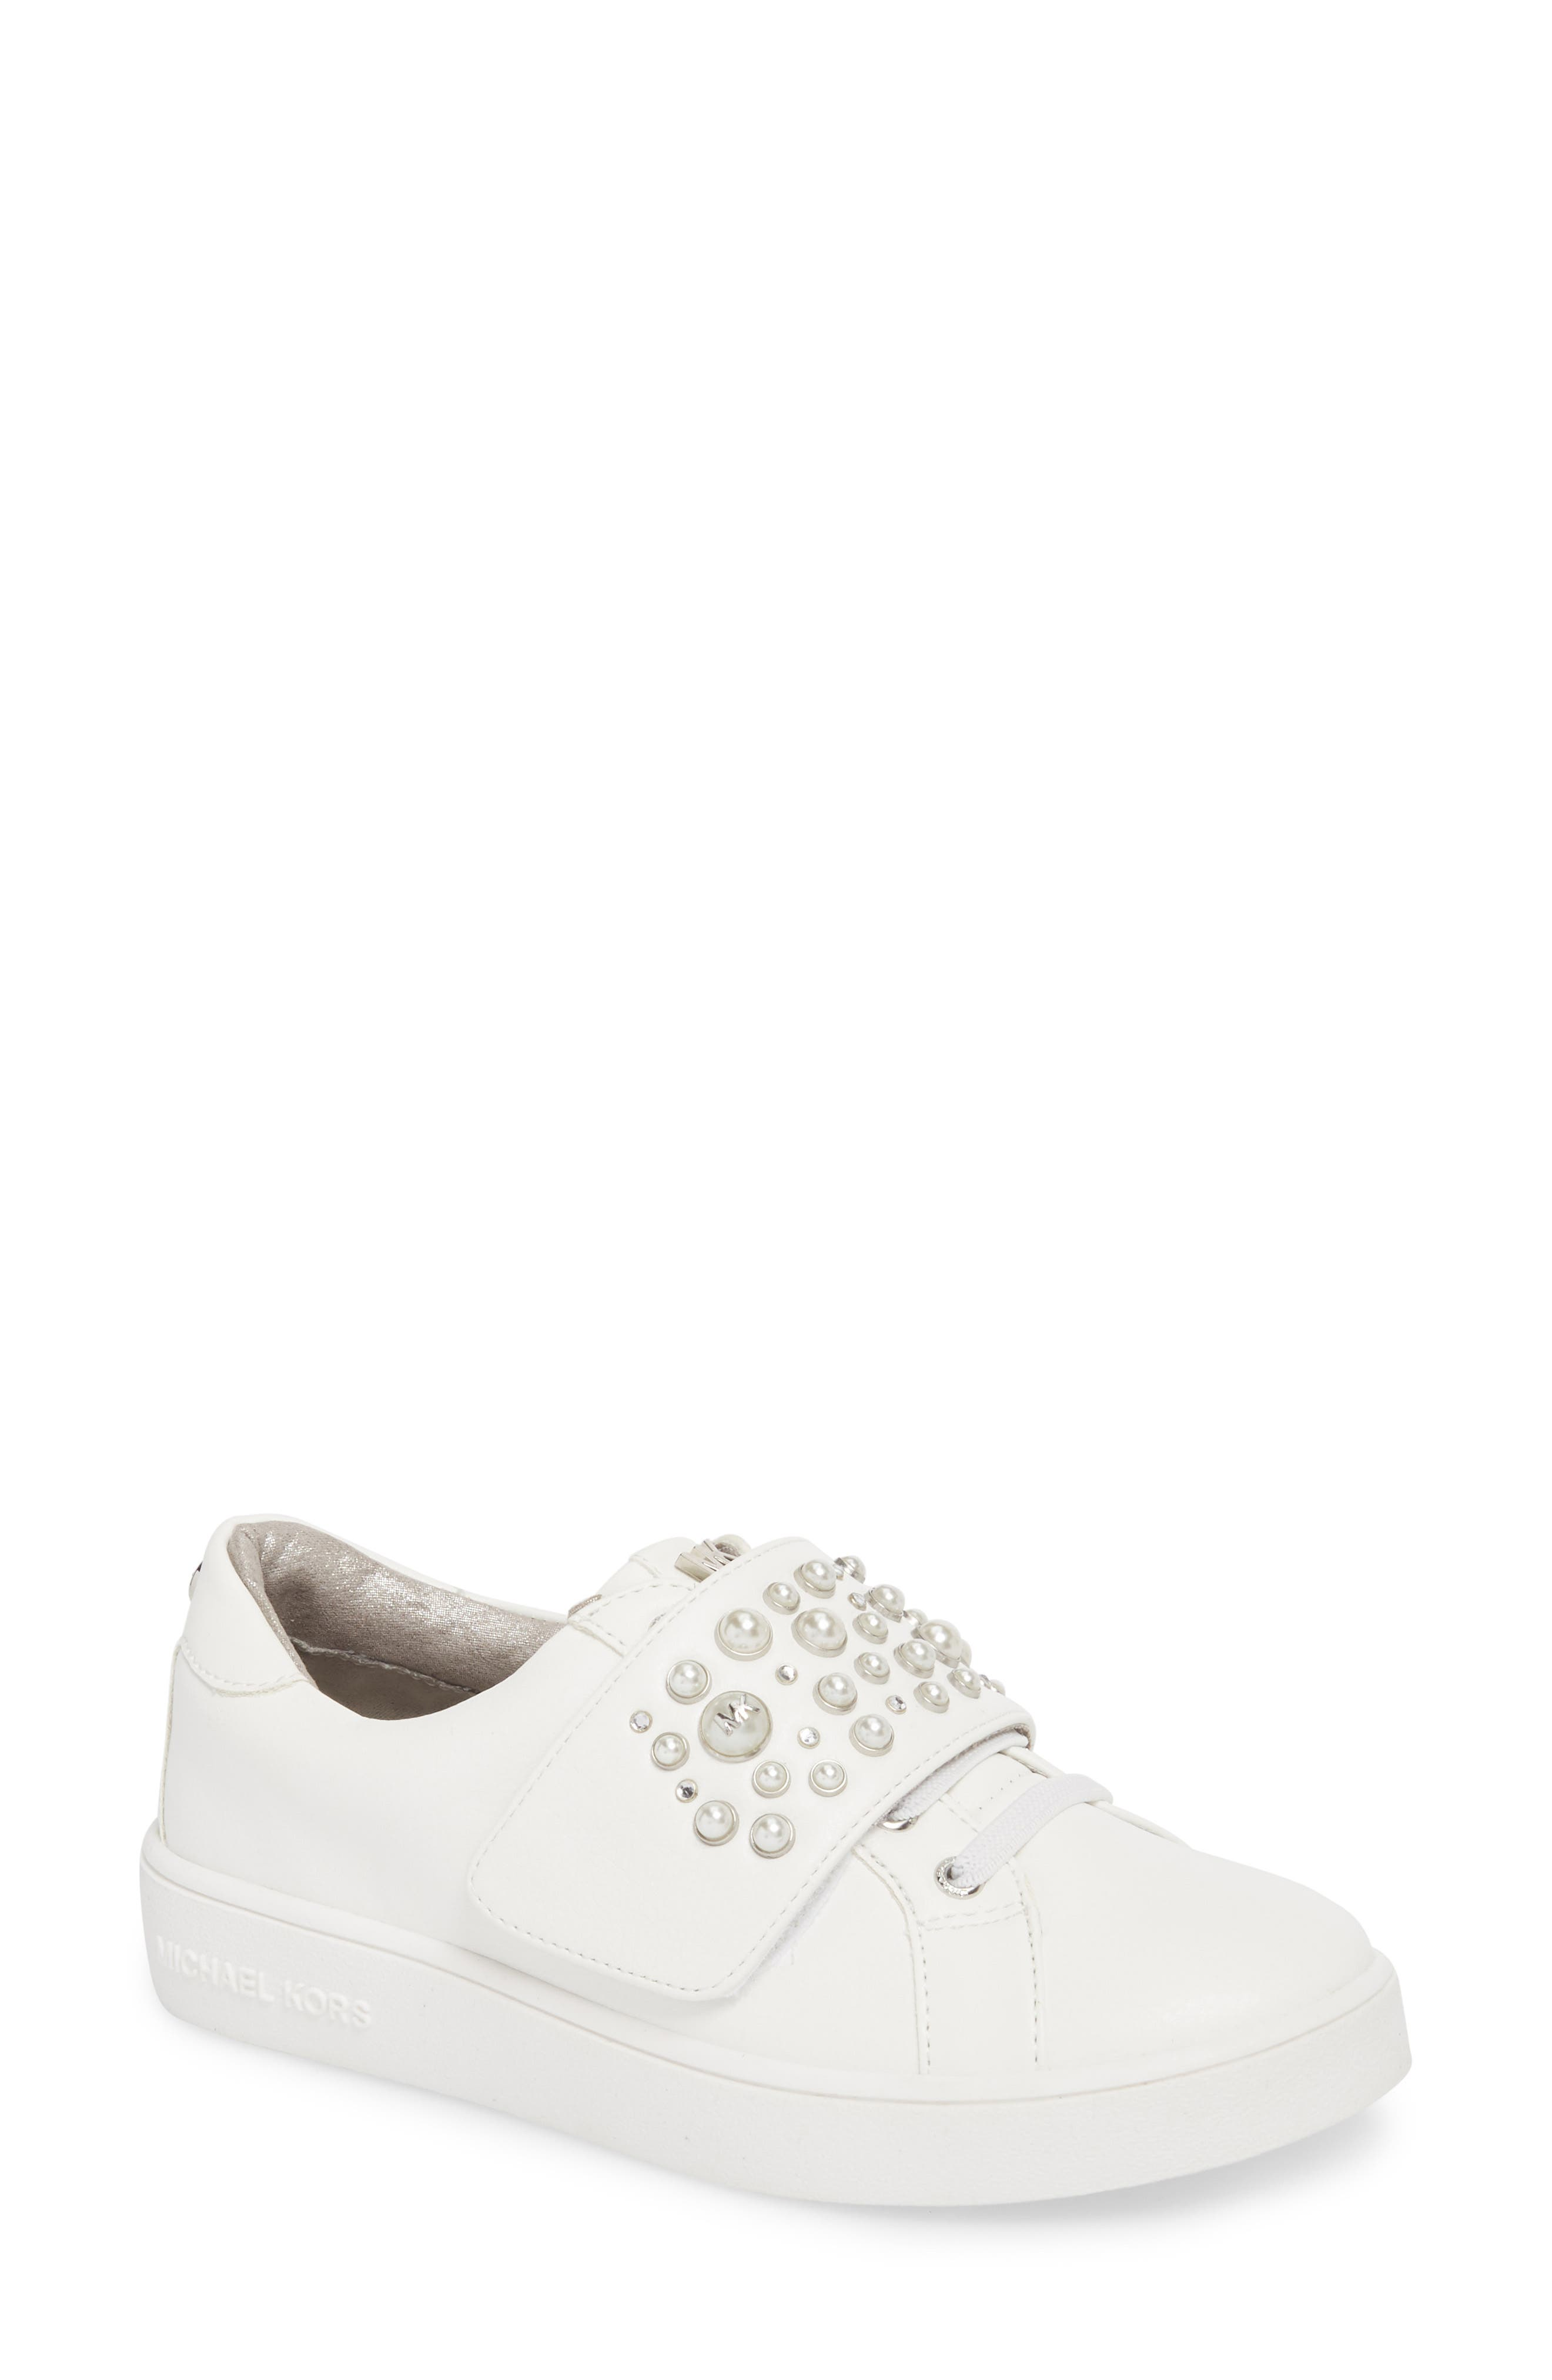 Ivy Embellished Metallic Sneaker,                         Main,                         color, 100